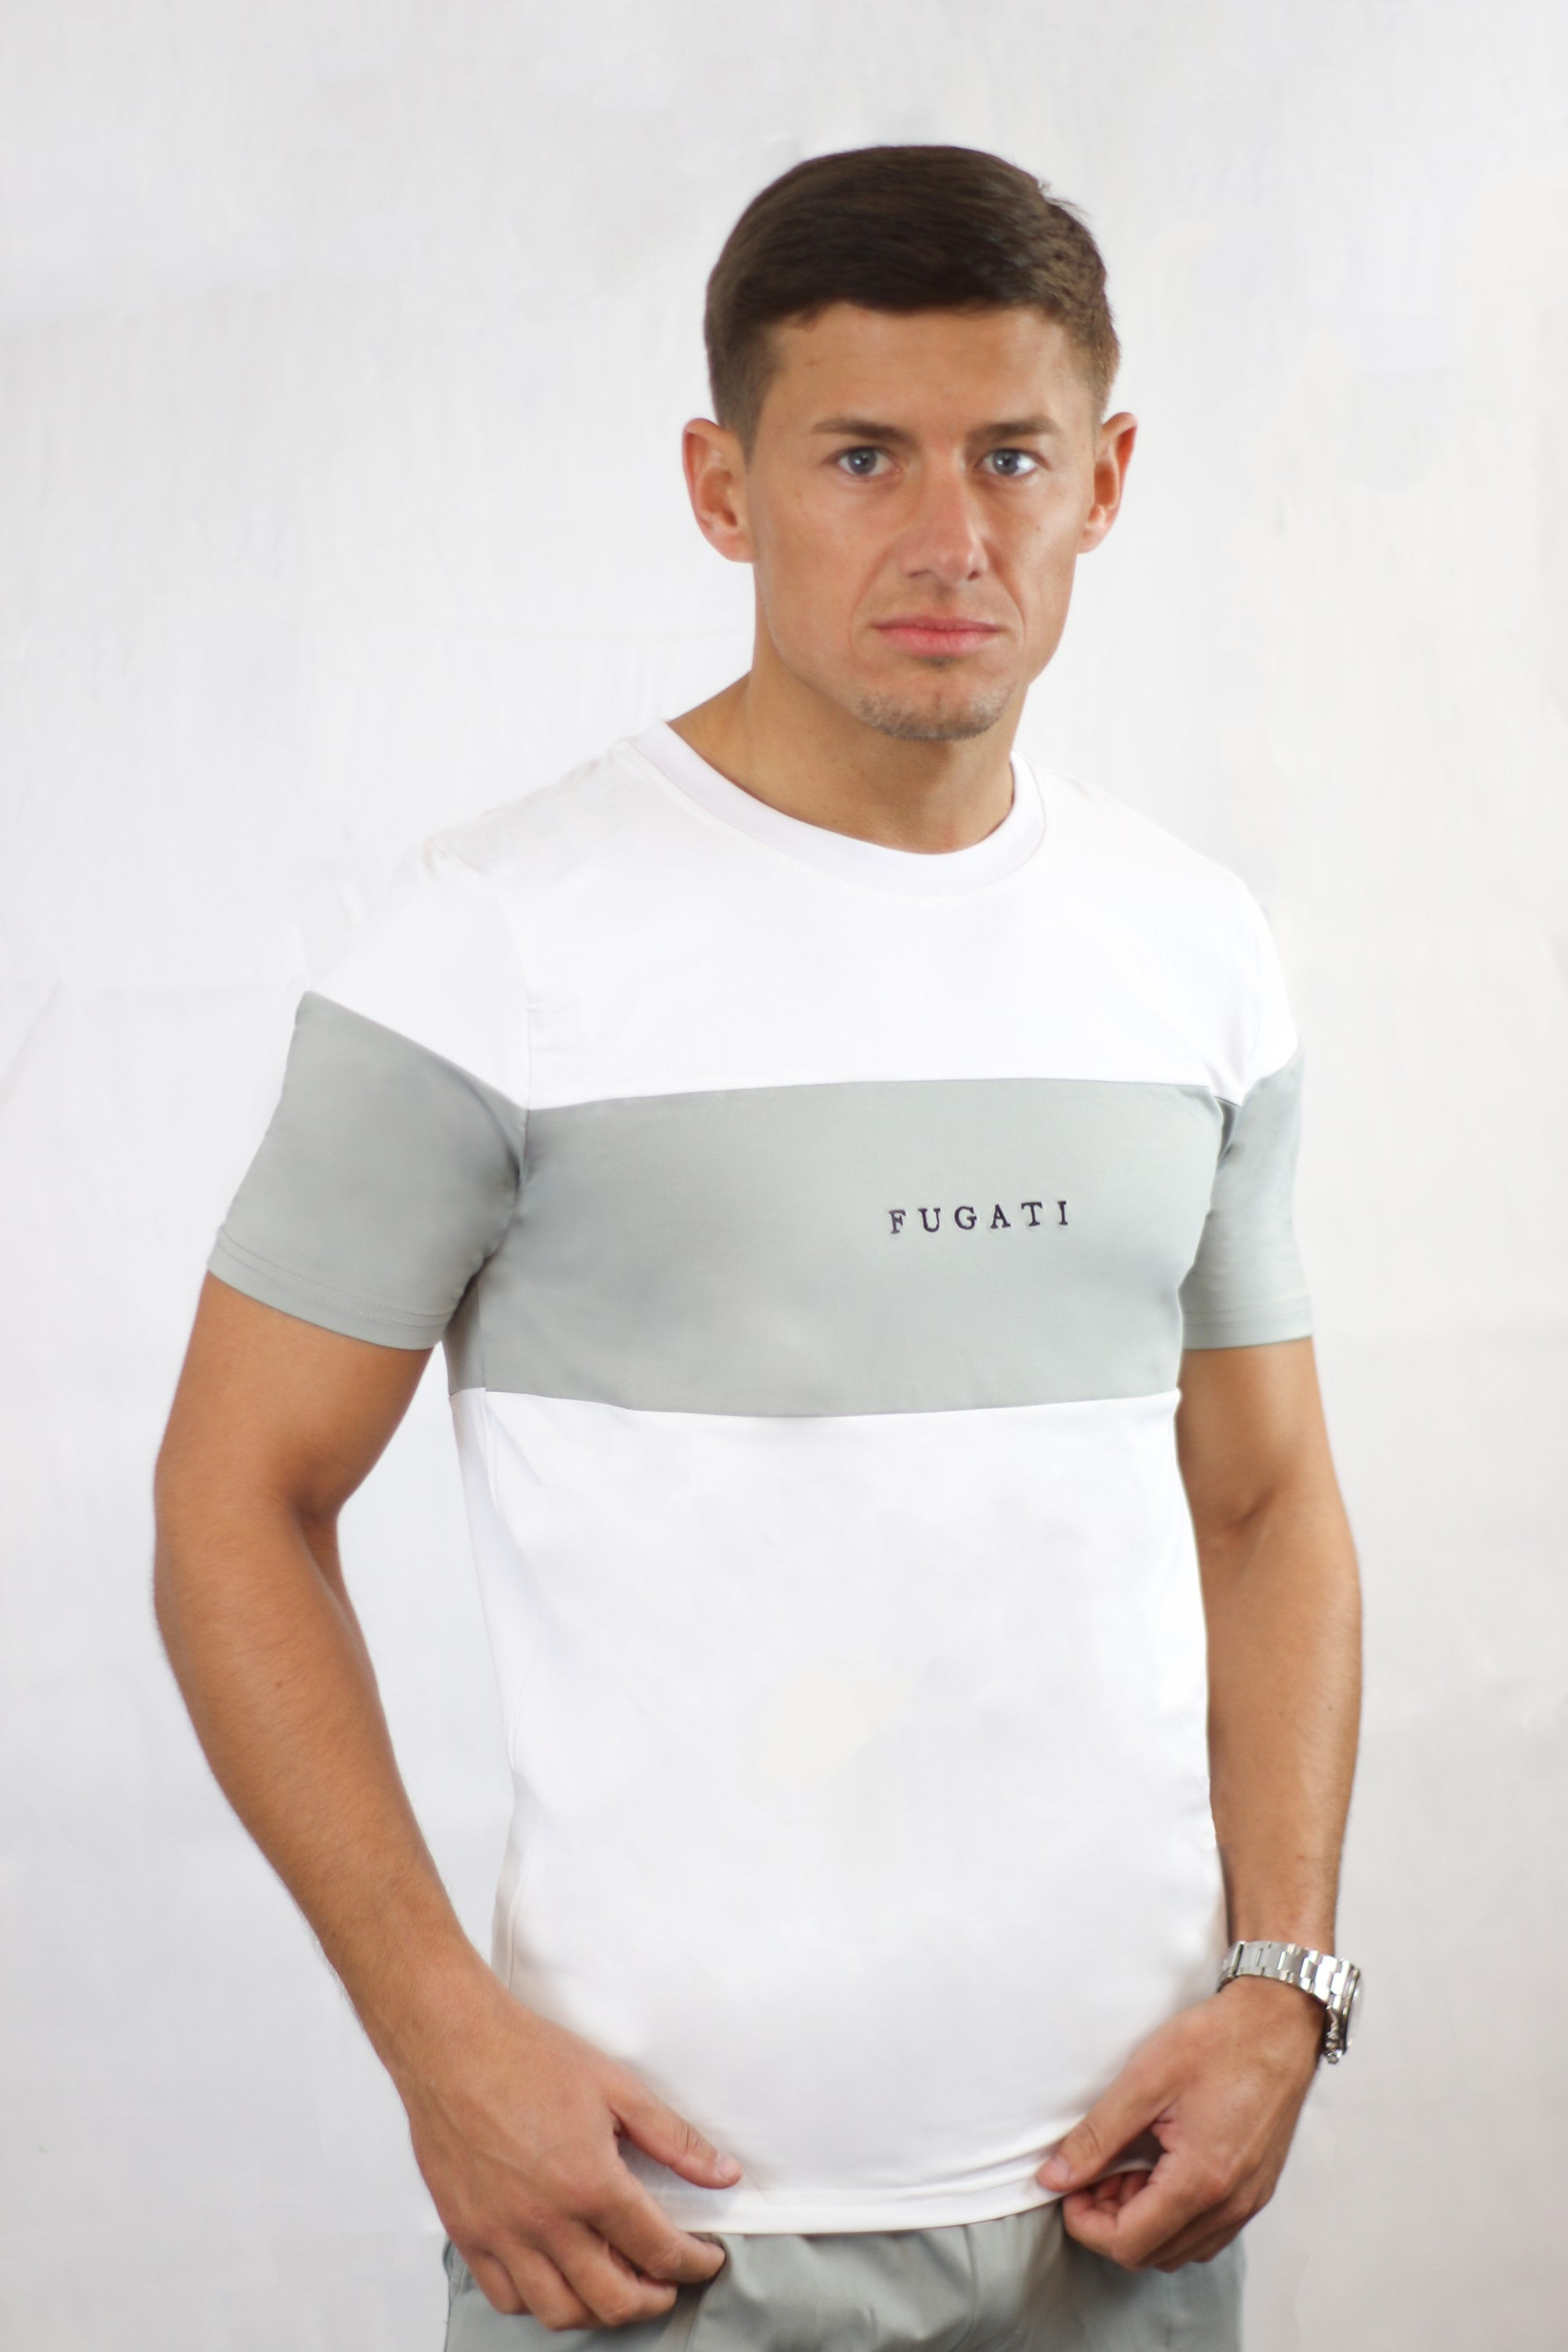 Fugati T-shirt - White/Grey